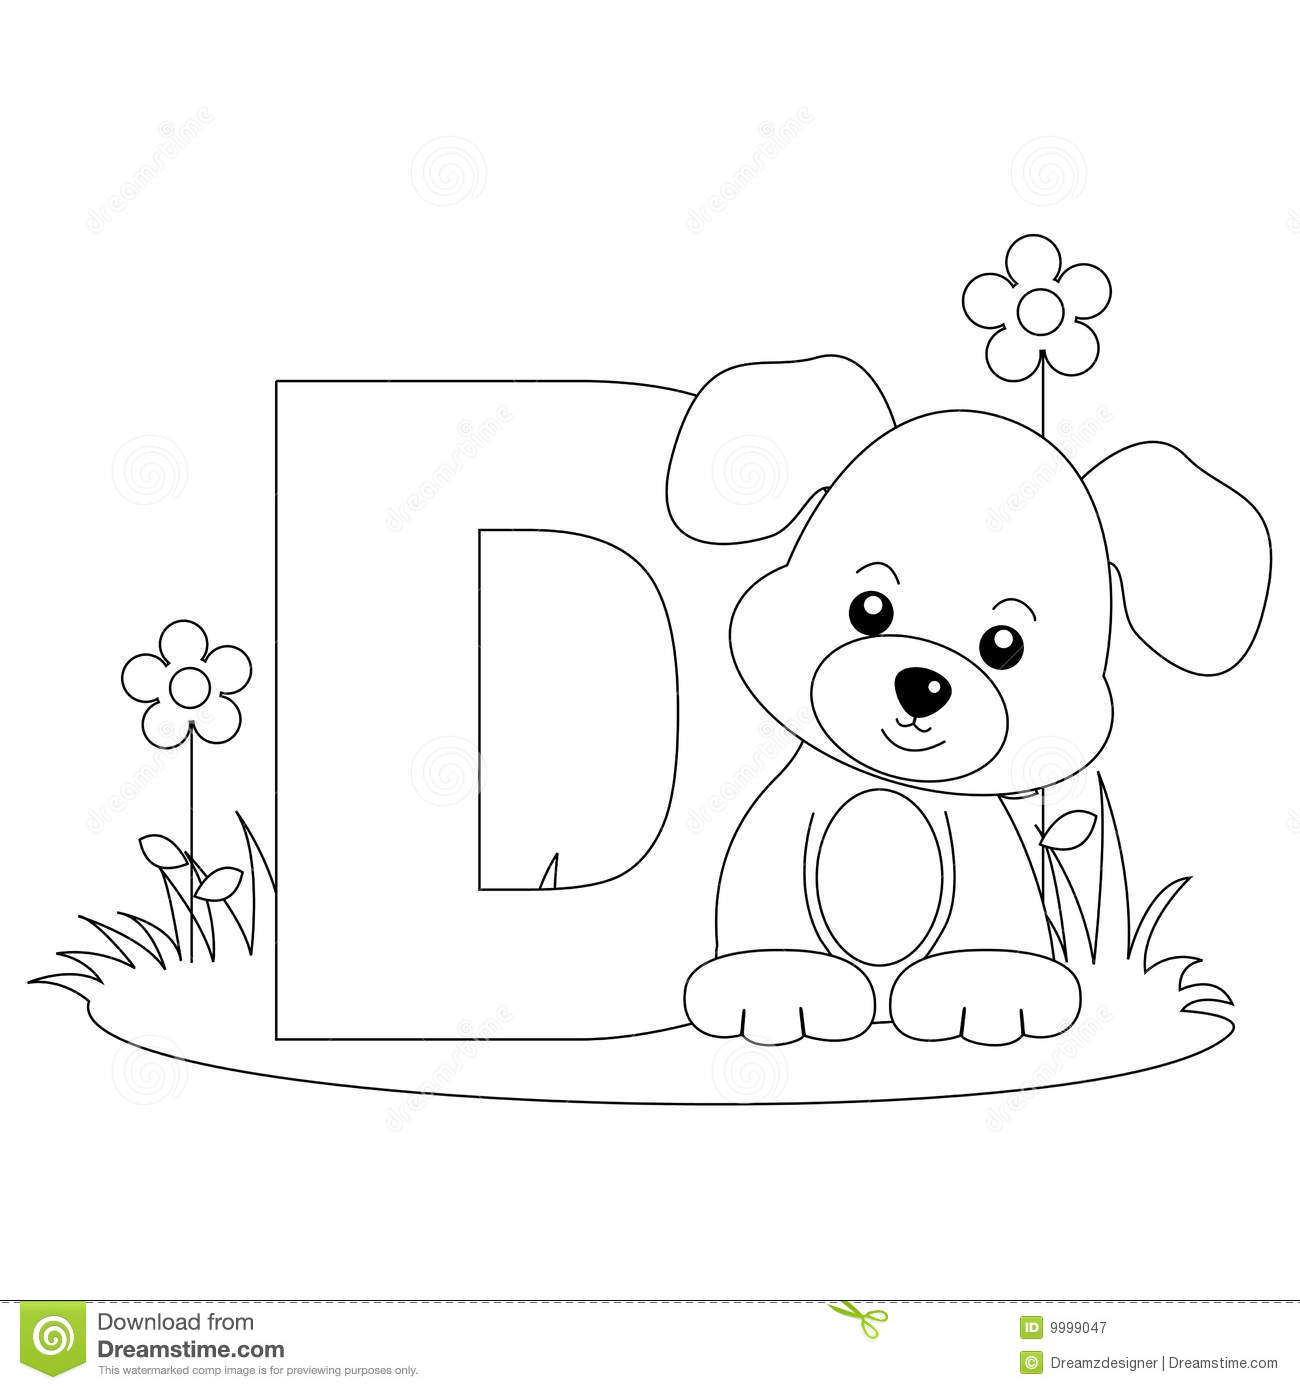 Animal Alphabet D Coloring Page Royalty Free Stock